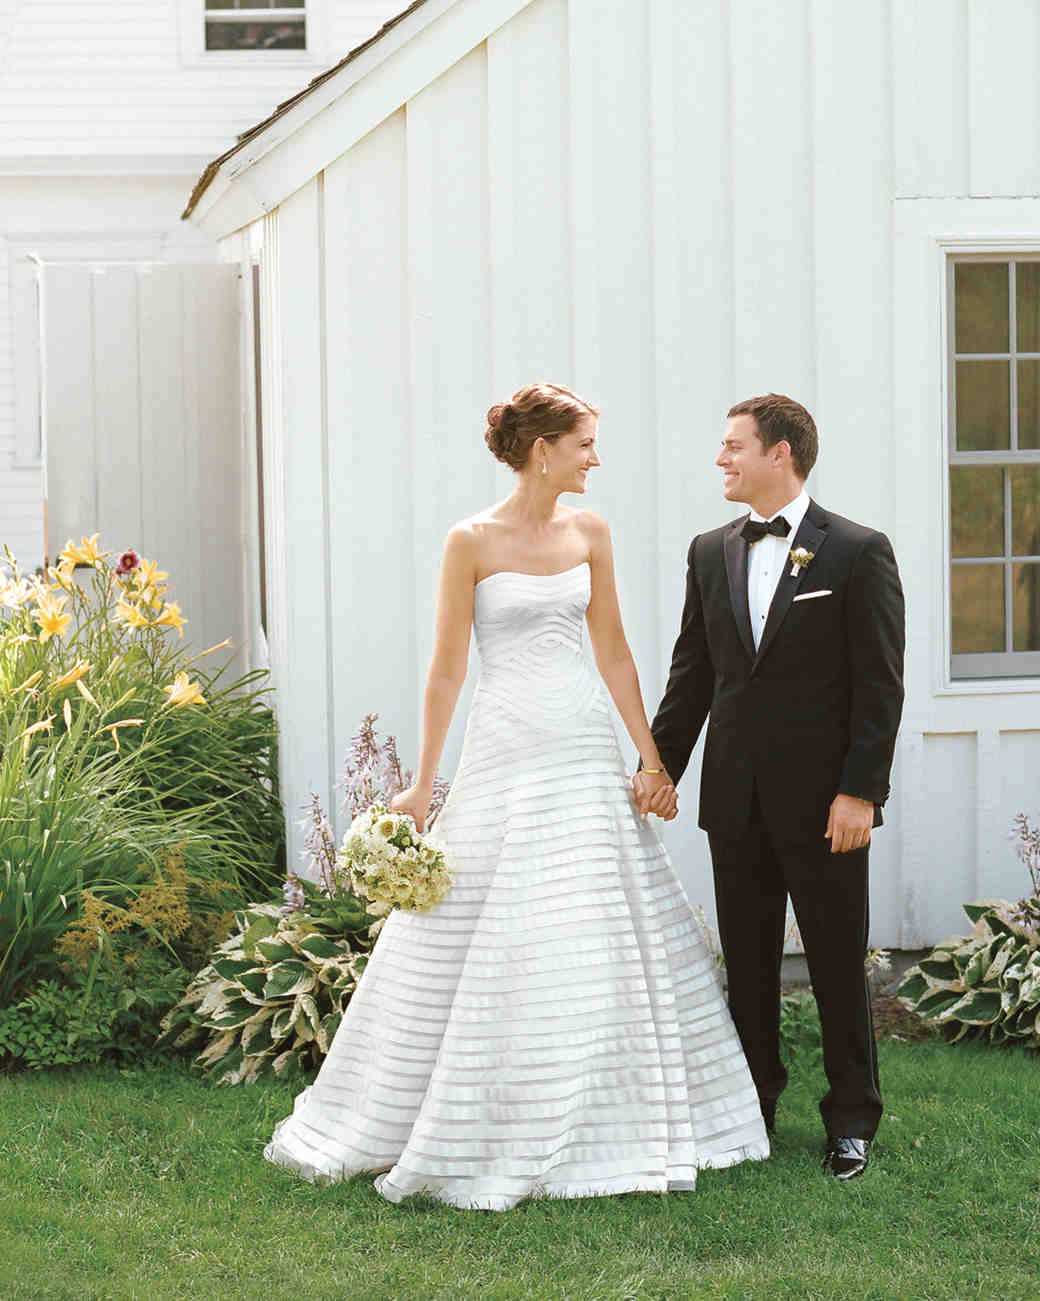 Best Dressed Bride And Groom Tips